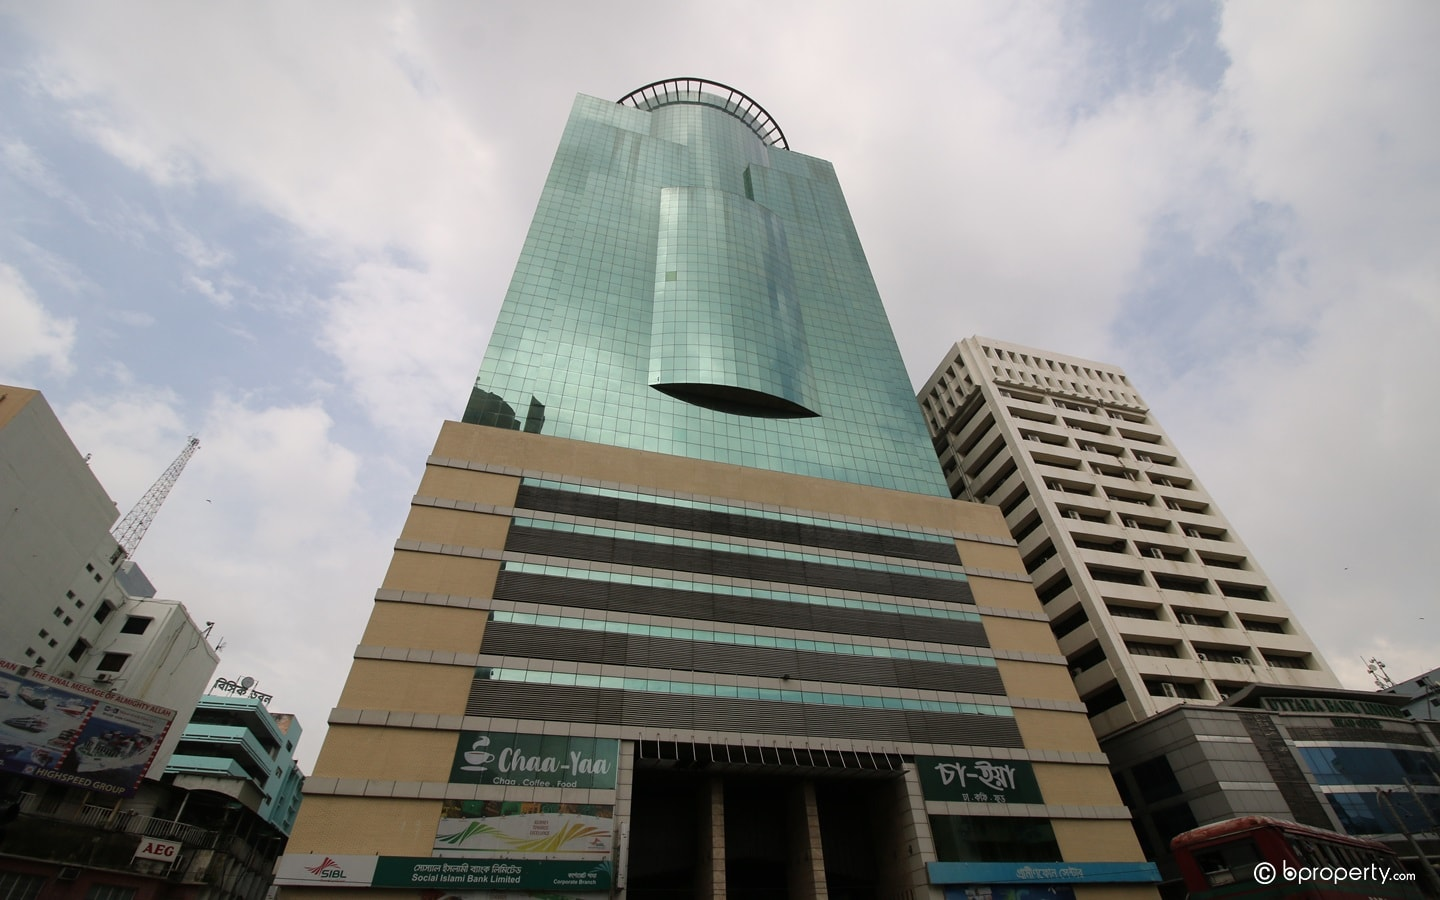 one of the most tallest buildings in Dhaka, the city centre